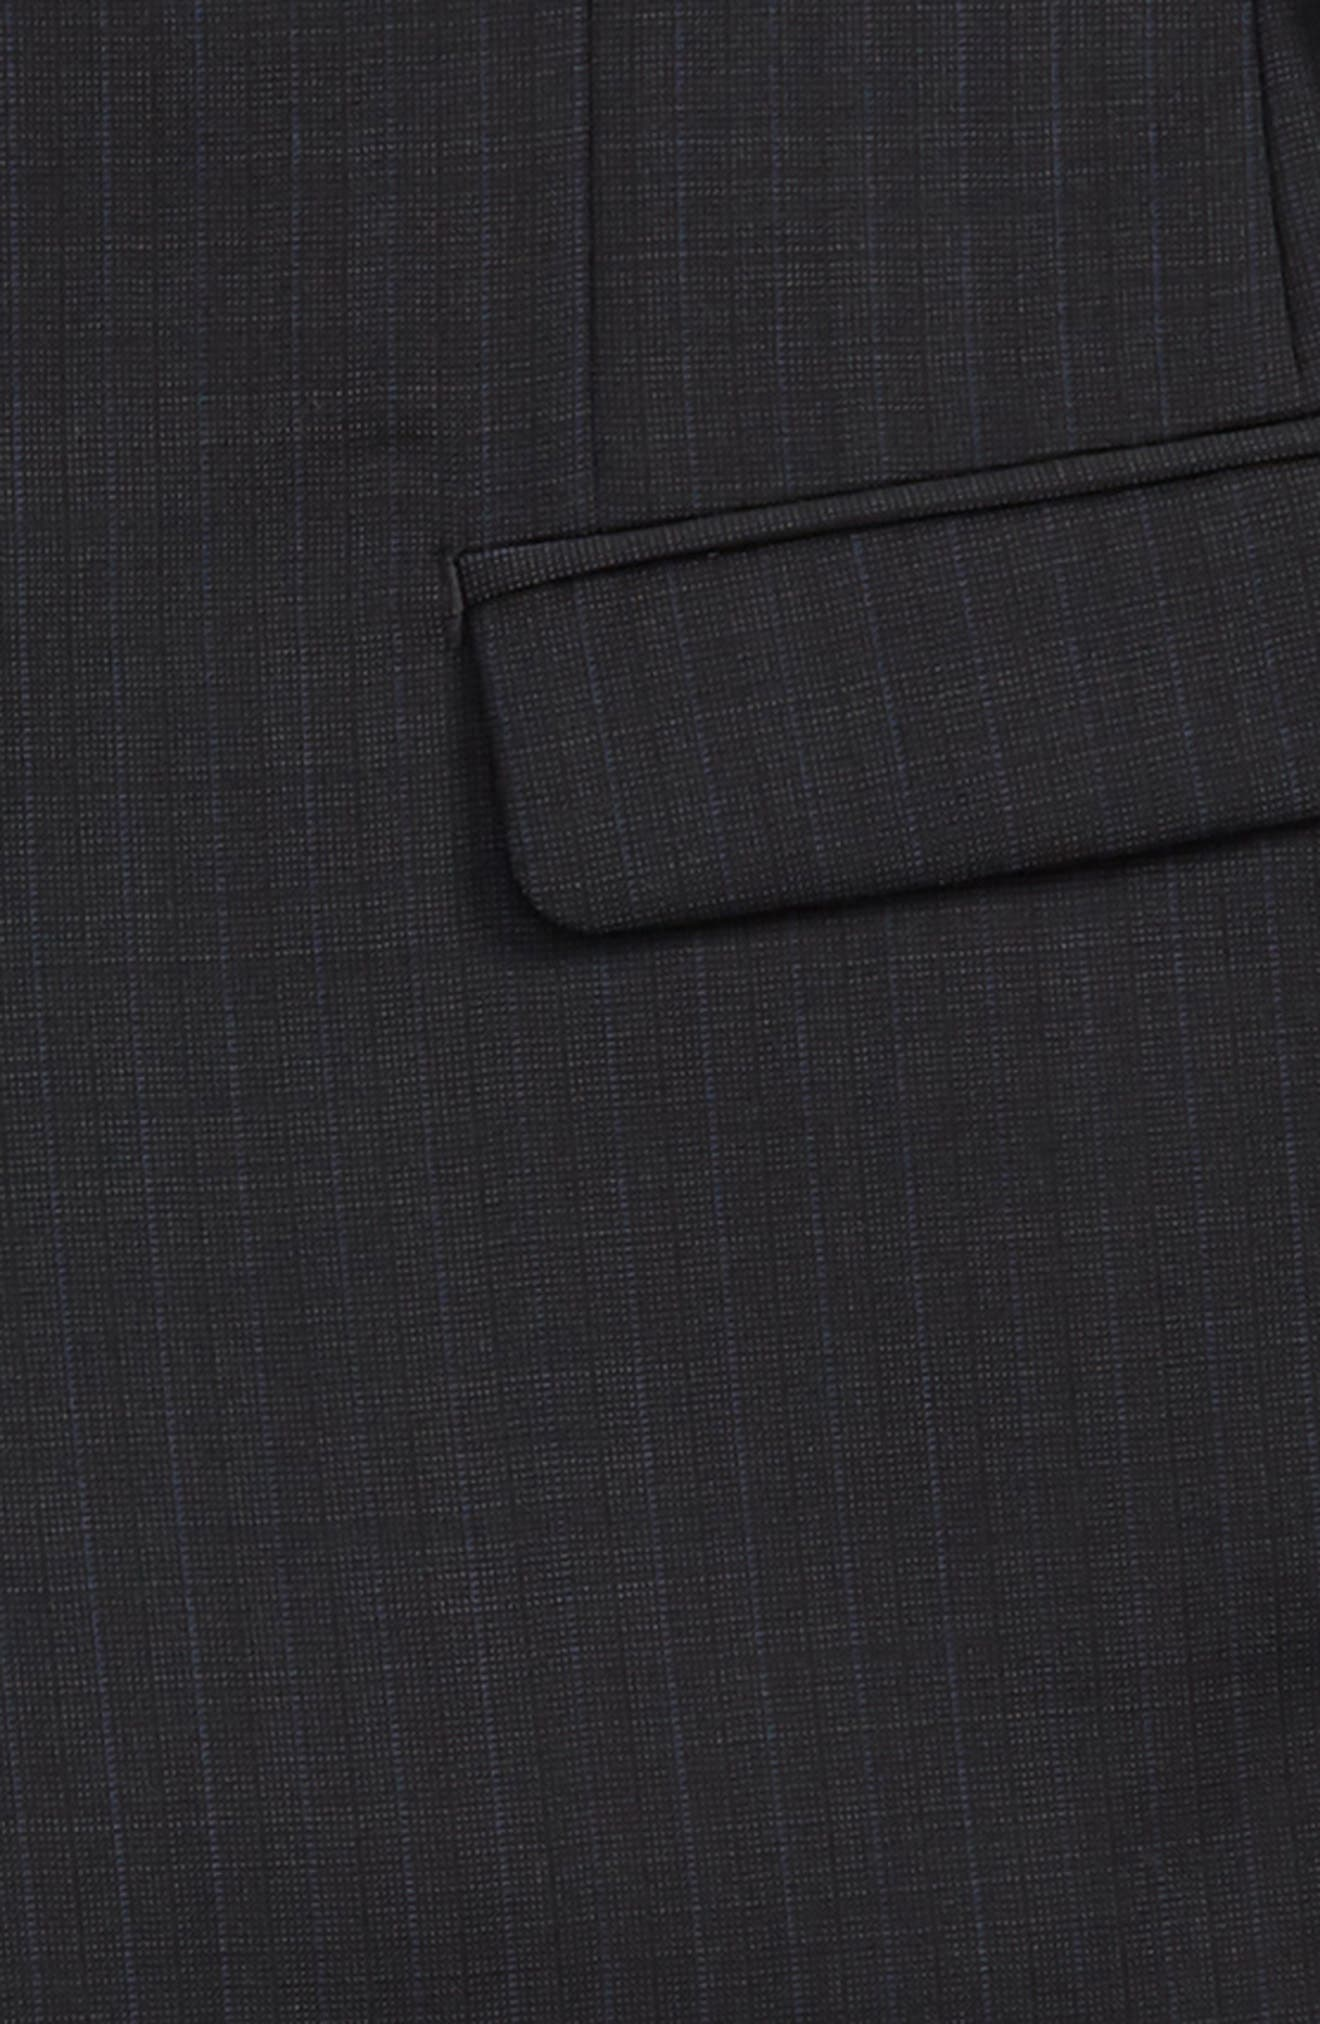 Check Wool Suit,                             Alternate thumbnail 2, color,                             BLACK / BLUE